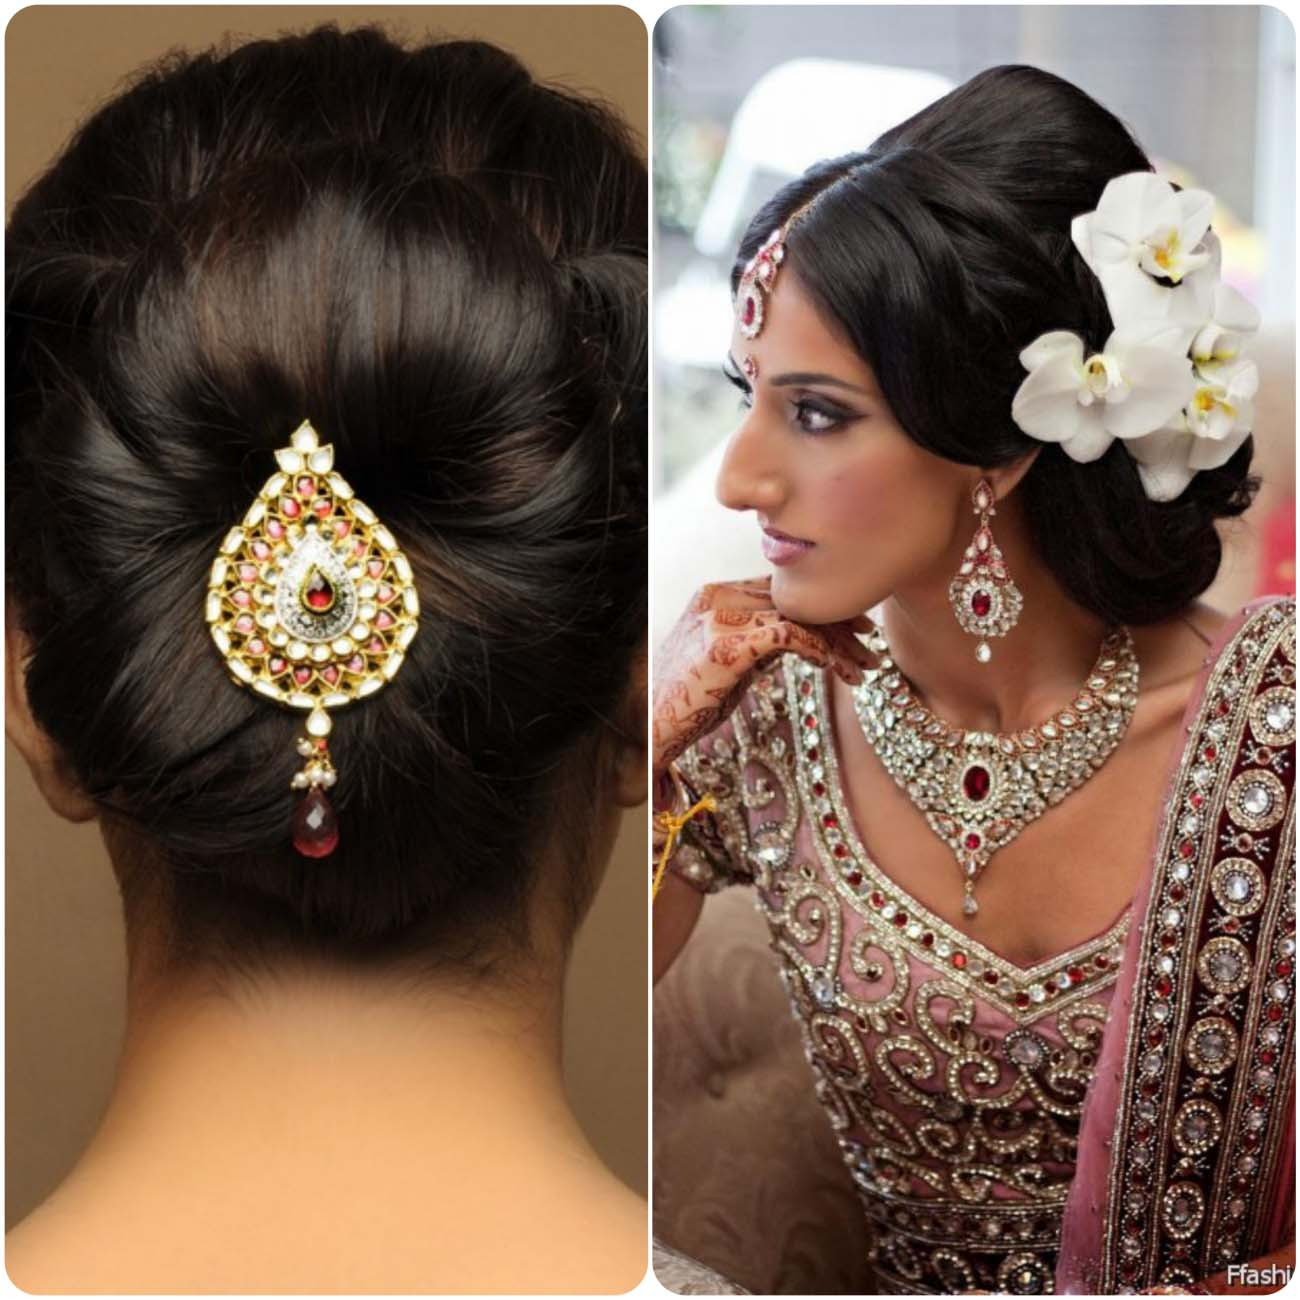 Hairstyles For Indian Brides  Indian Wedding Hairstyles For Brides 2017 2018